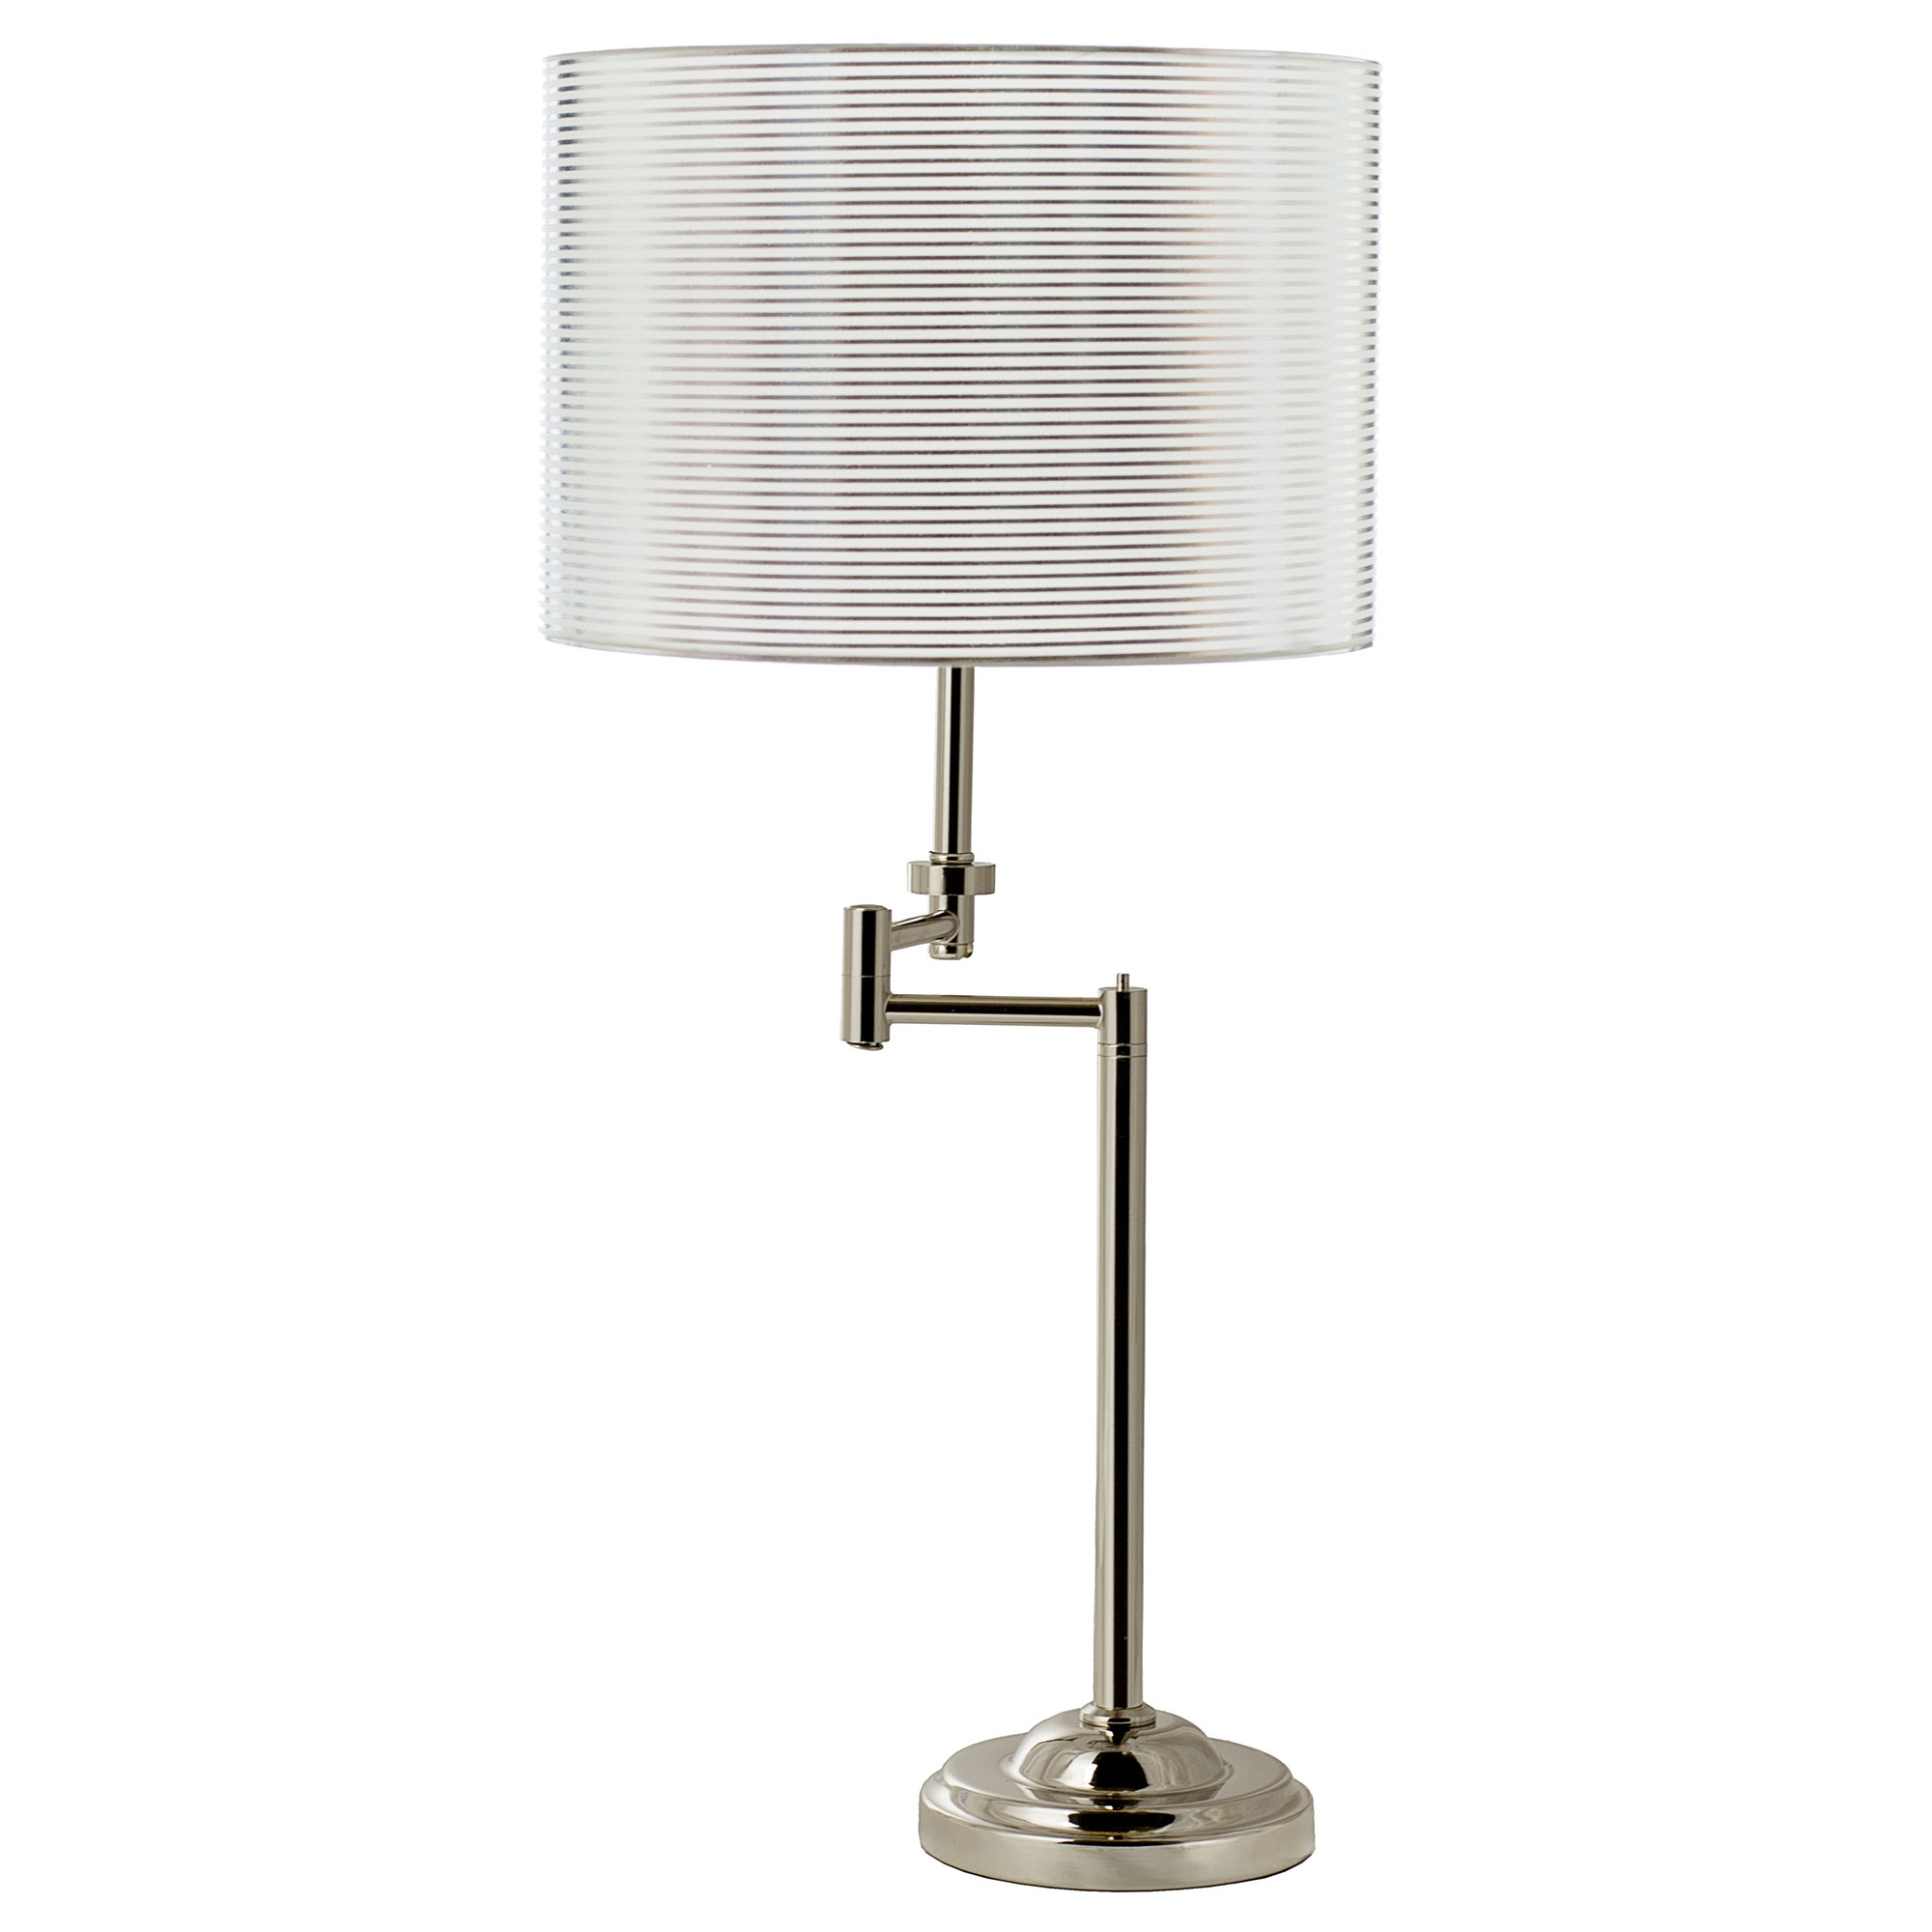 Nikola Adjustable Metal Swing Arm Table Lamp, Satin Chrome